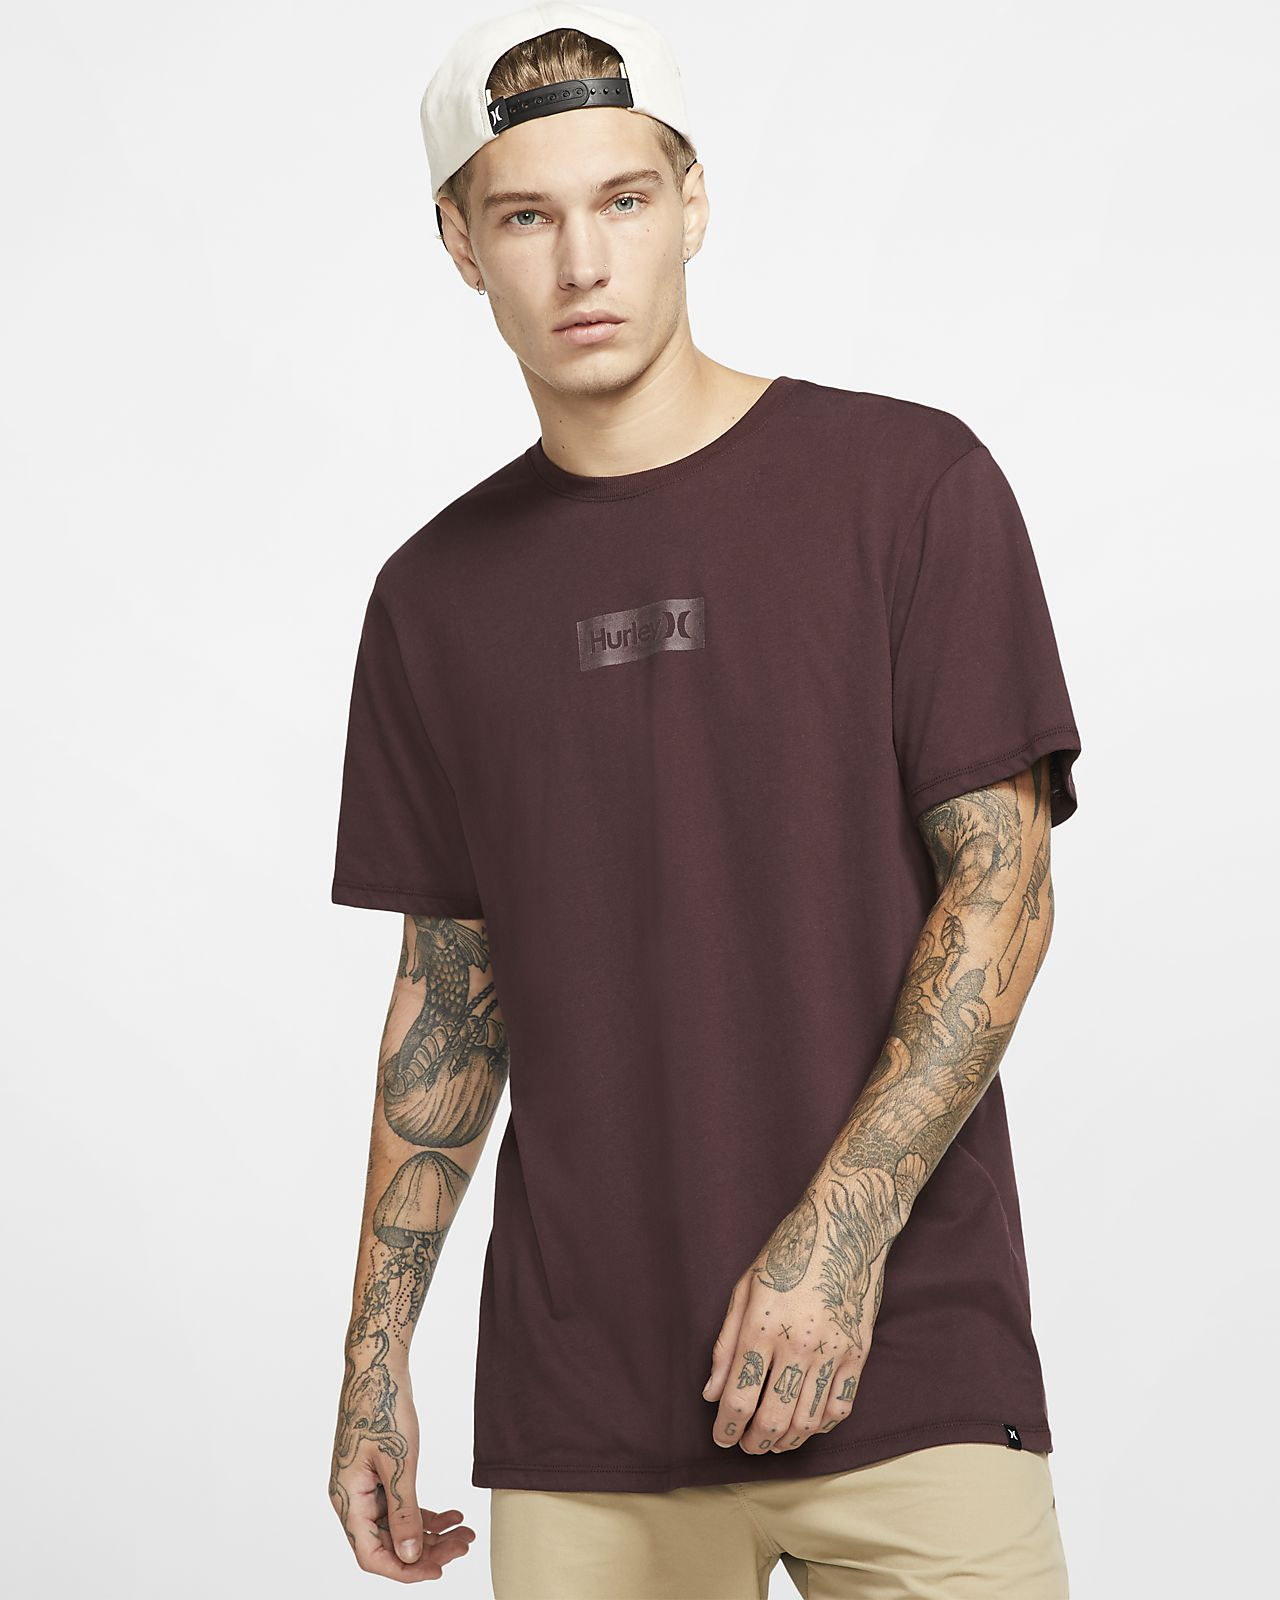 Hurley Dri-FIT One And Only Small Box Reflective Camiseta - Hombre